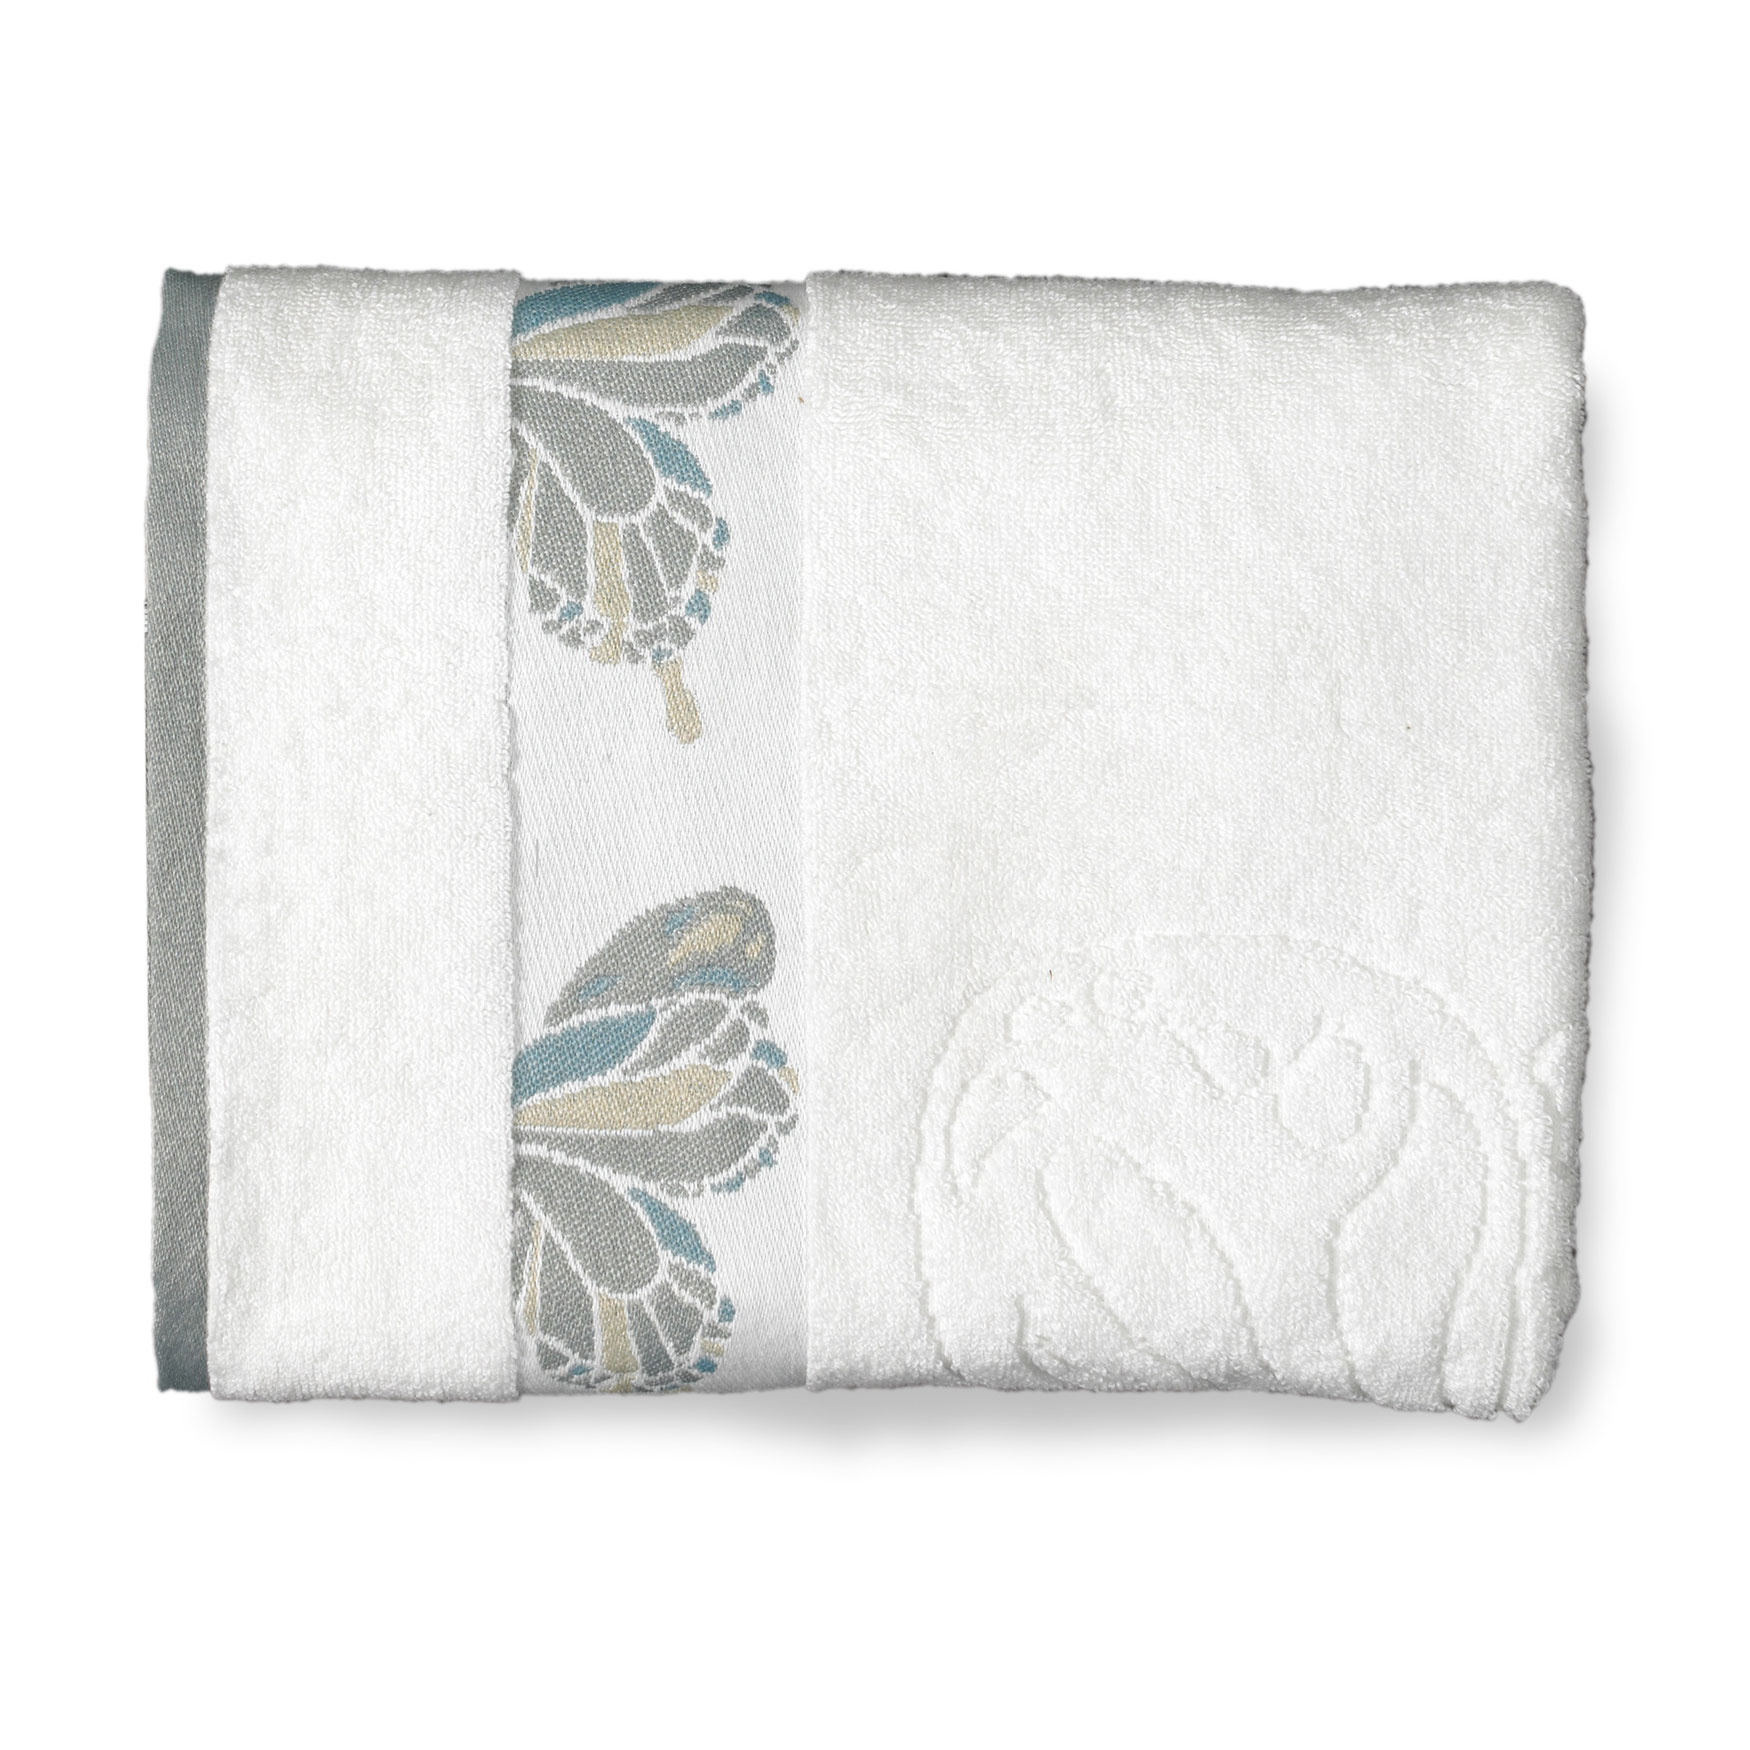 Butterfly Bath Towel,